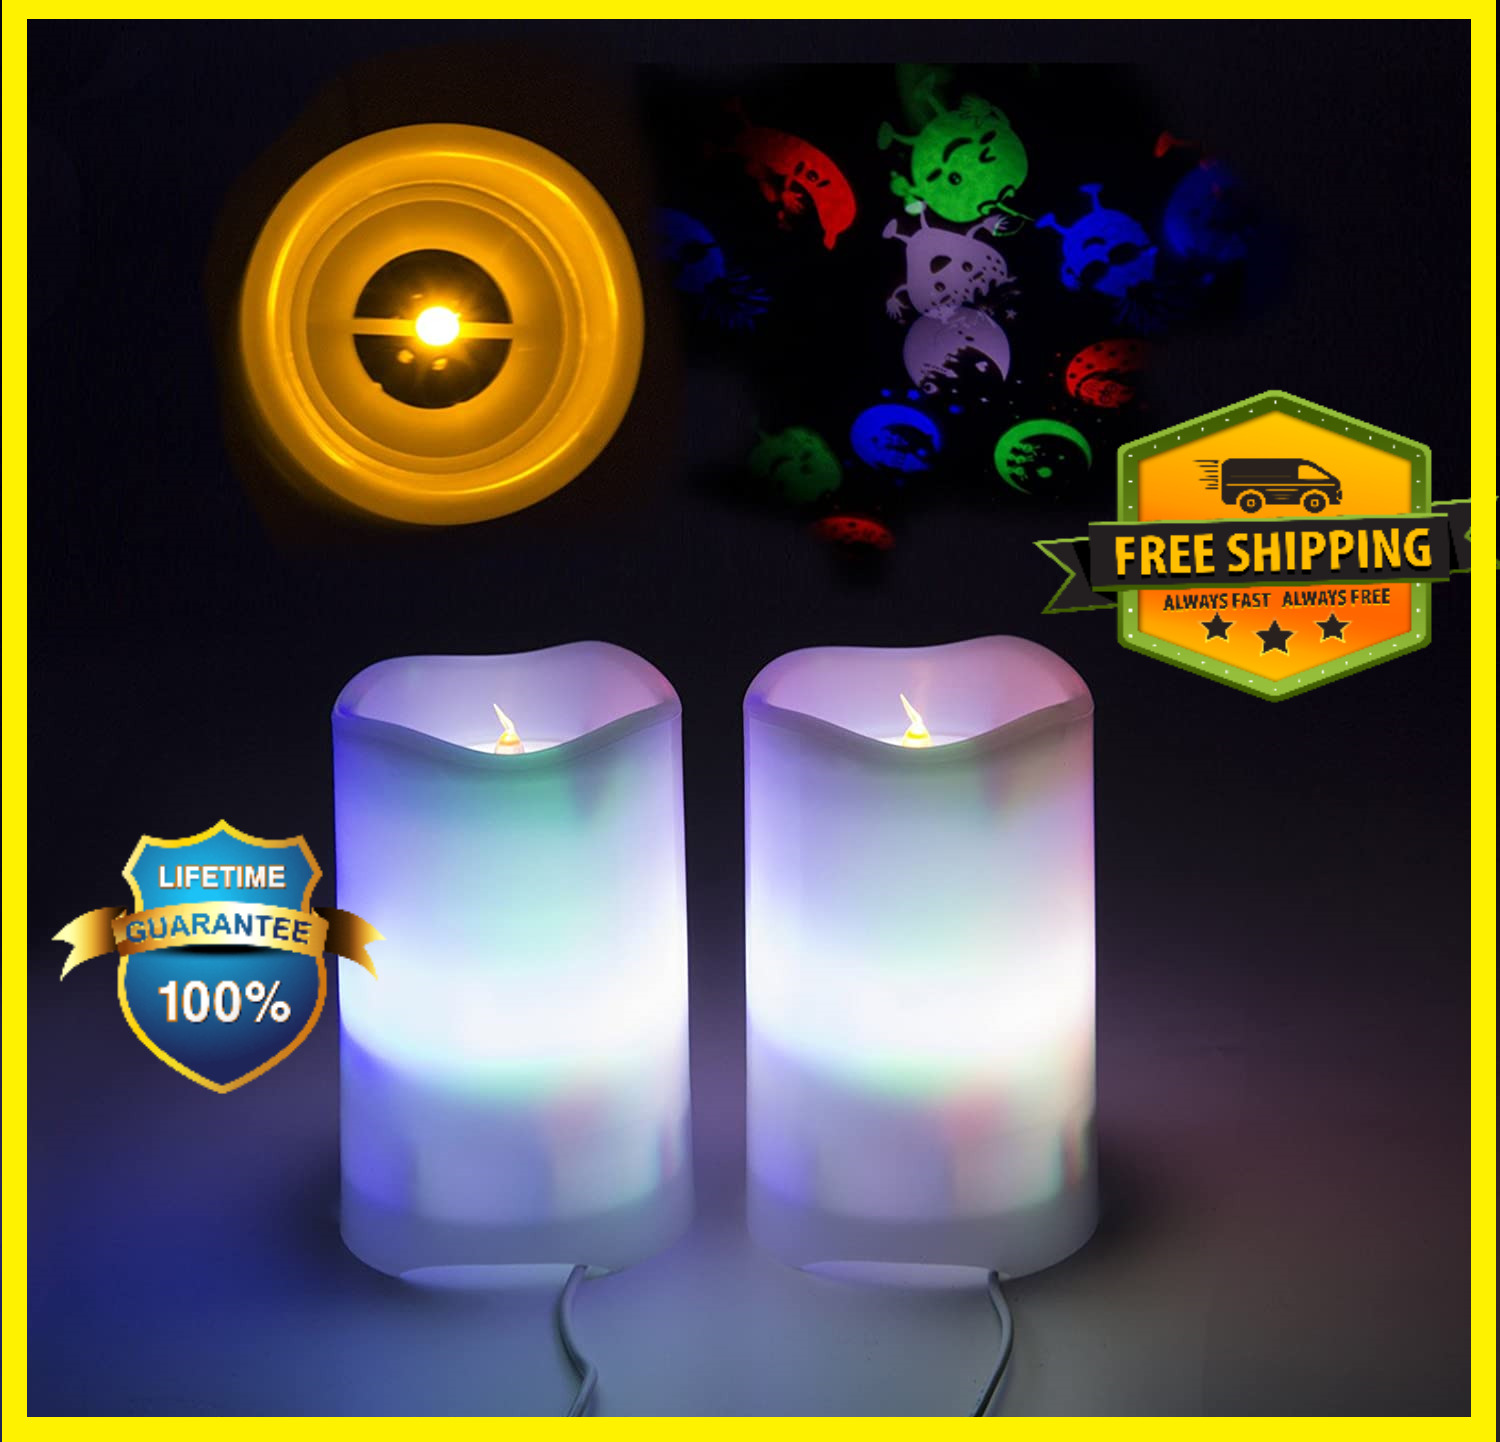 2 x LED Candle Projection Lights - Flame less Electric Candles with Remote Timer